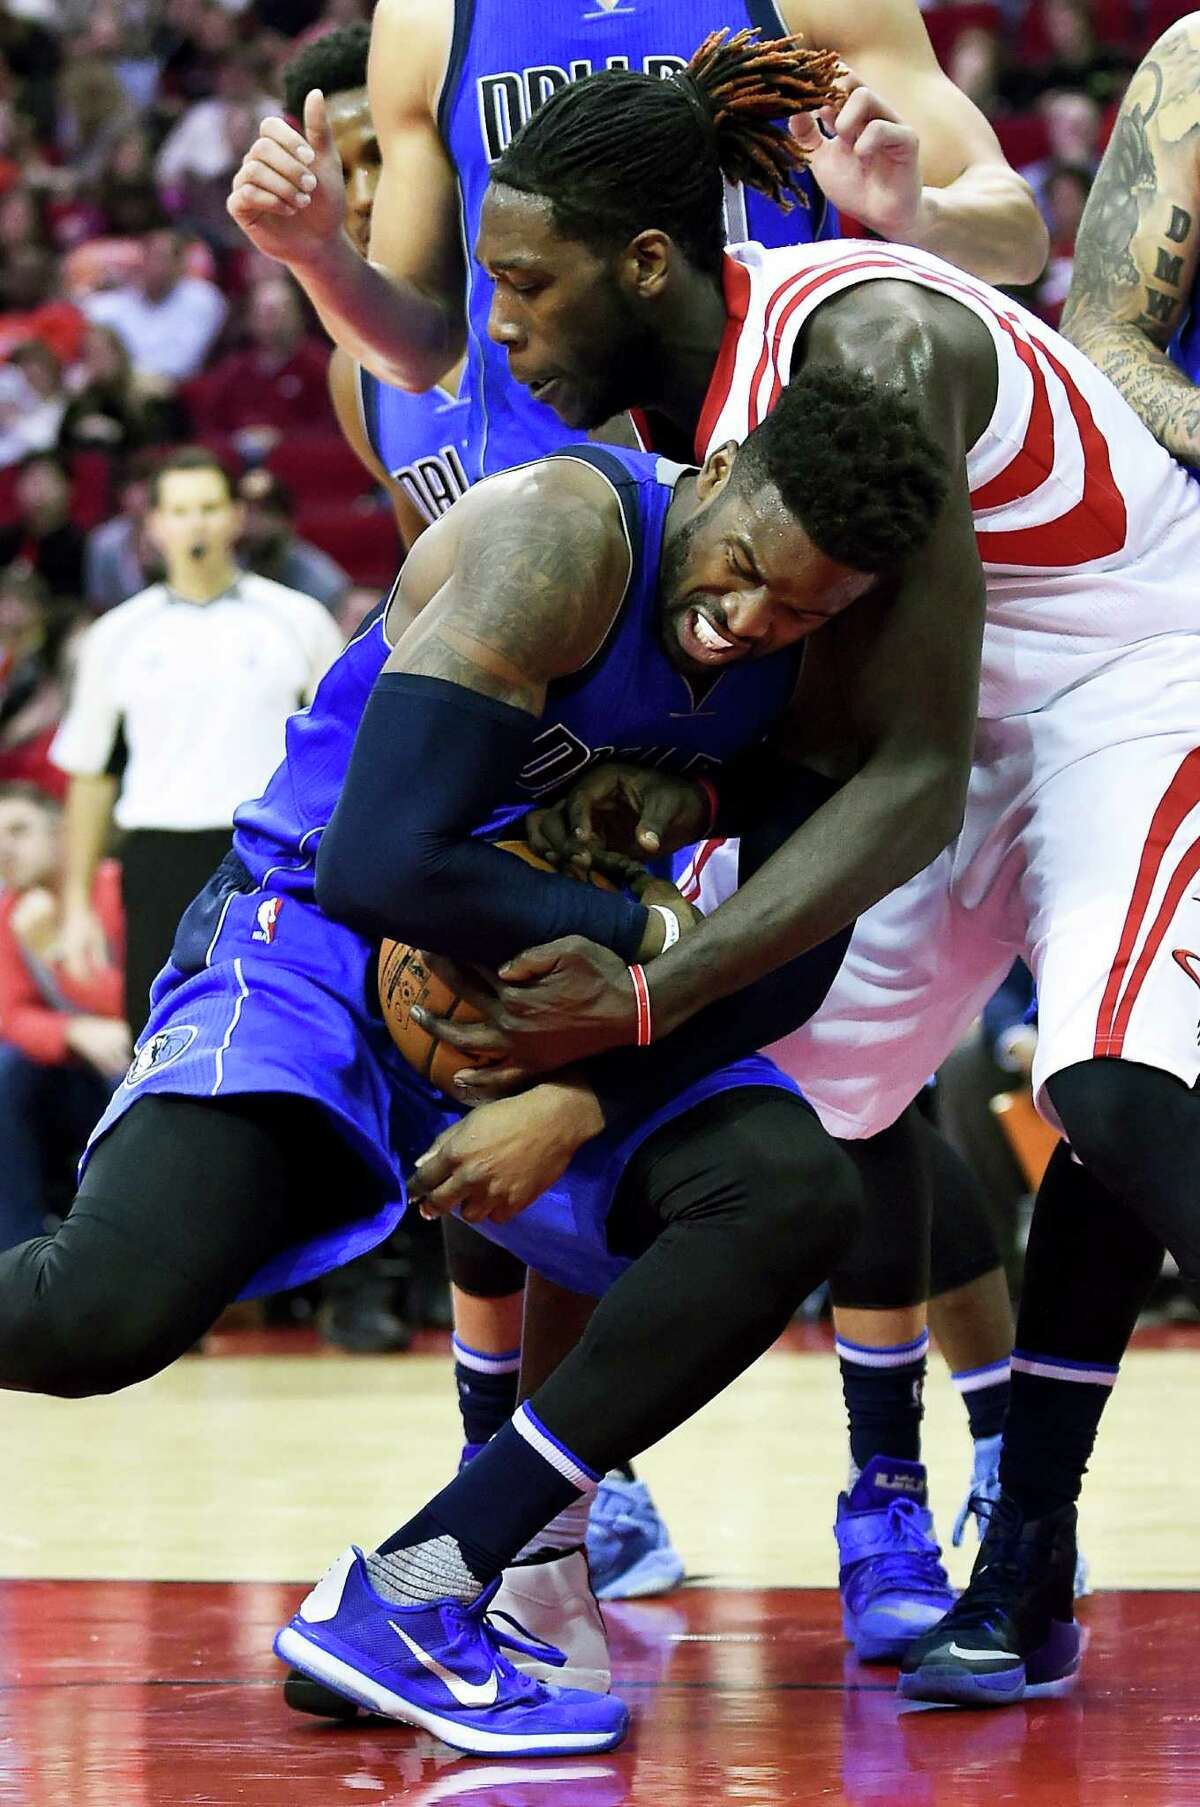 Dallas Mavericks guard Wesley Matthews, bottom, and Houston Rockets forward Montrezl Harrell (5) fight for a loose ball during the second half of an NBA basketball game, Saturday, Dec. 10, 2016, in Houston. Houston won 109-87. (AP Photo/Eric Christian Smith)